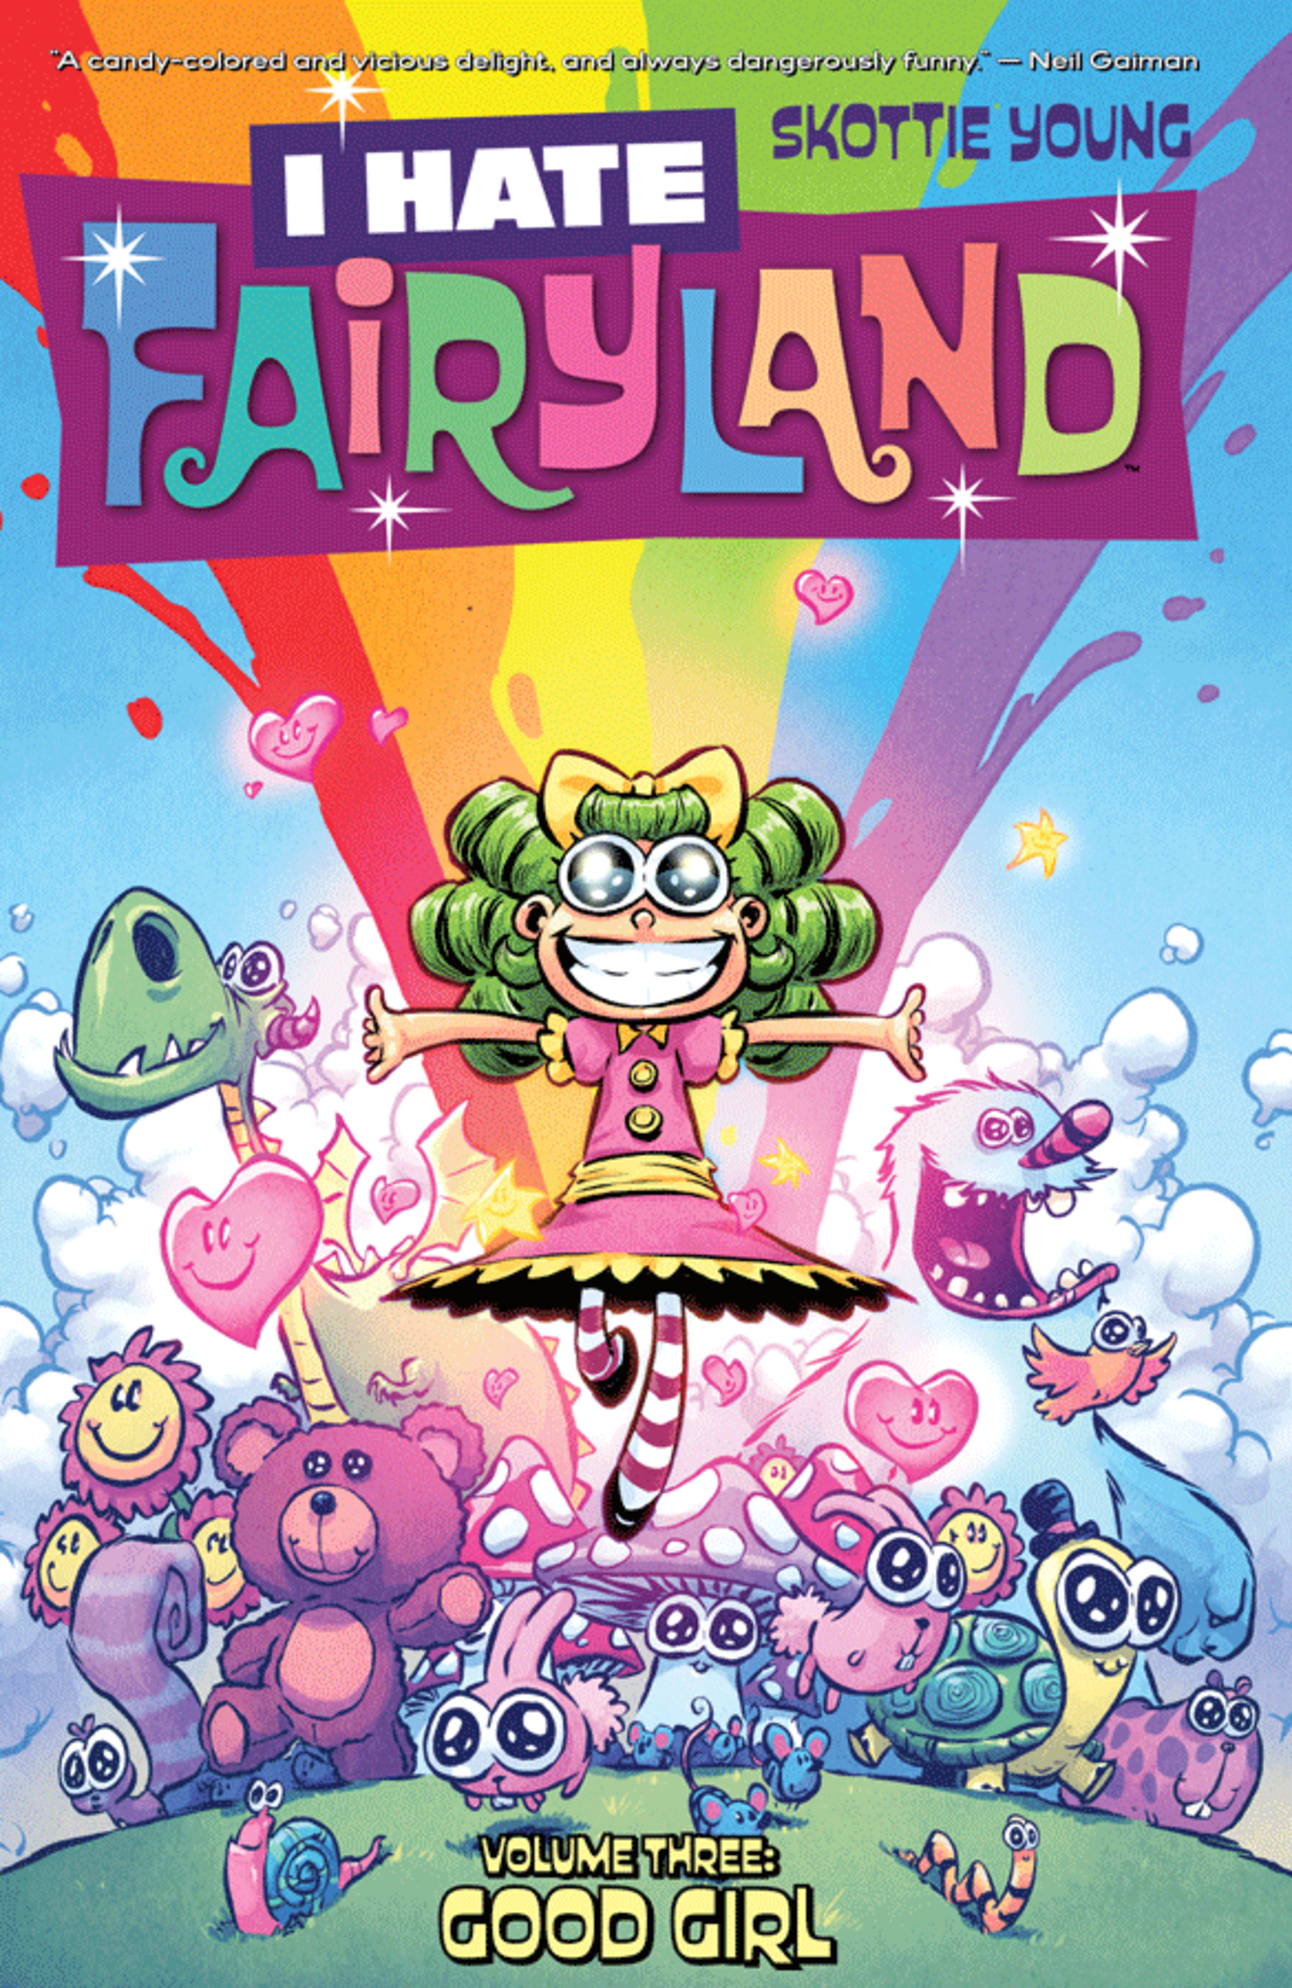 ihatefairyland_vol03-1.png